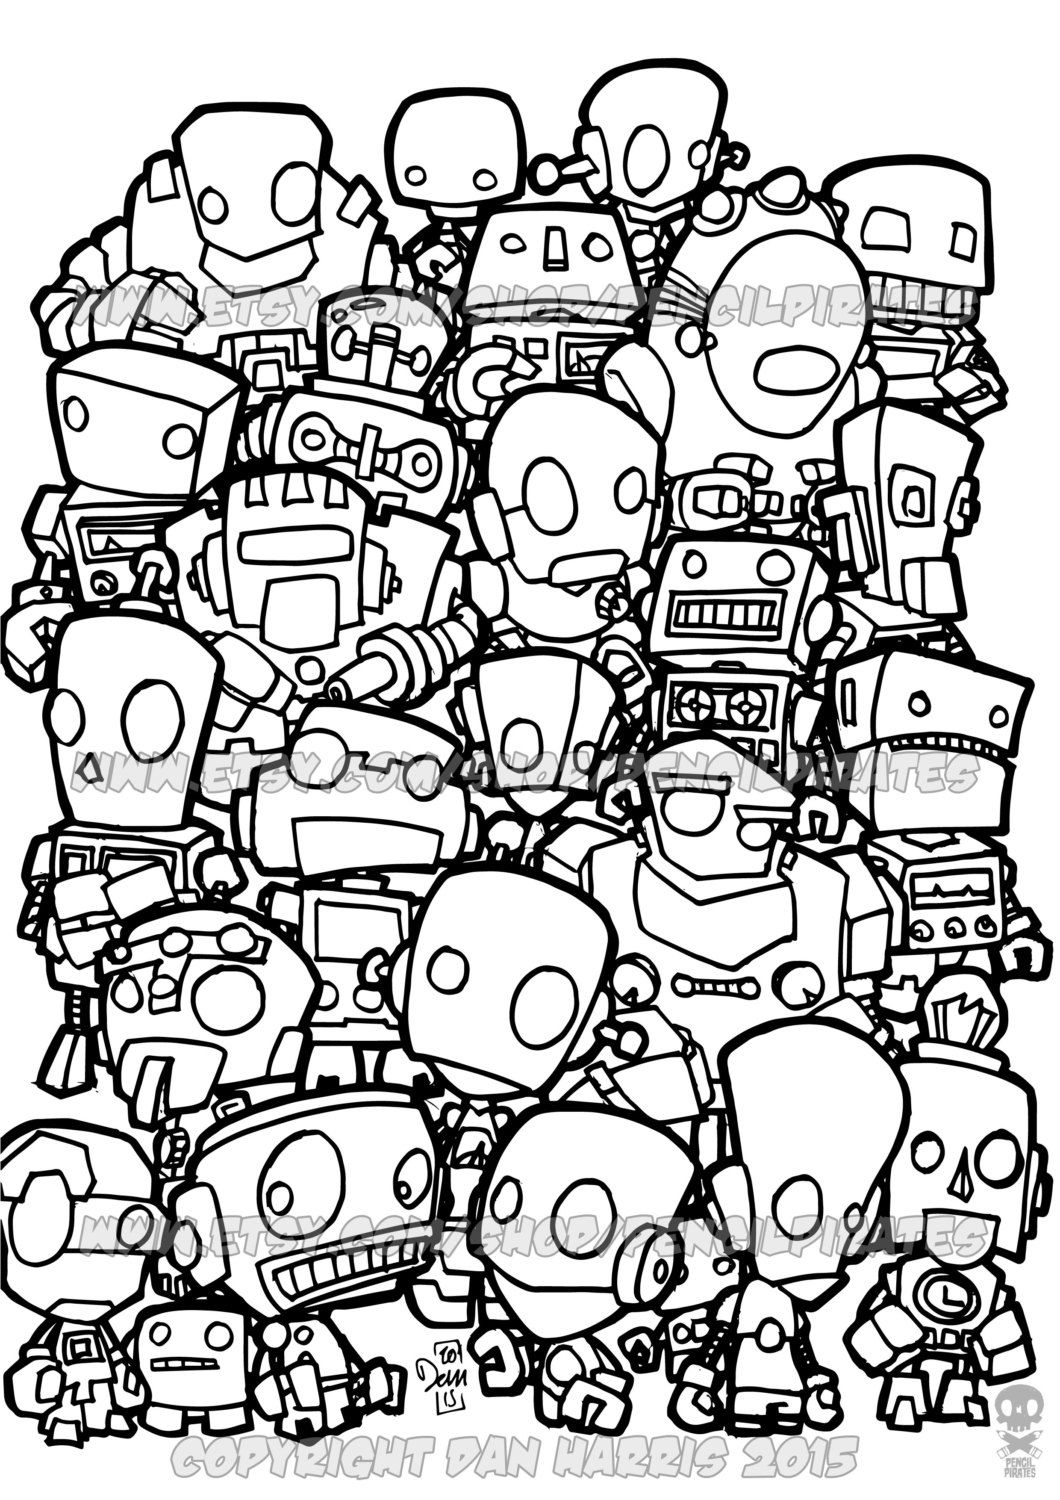 Robot Colouring Page, Adult colouring book page - one page instant ...